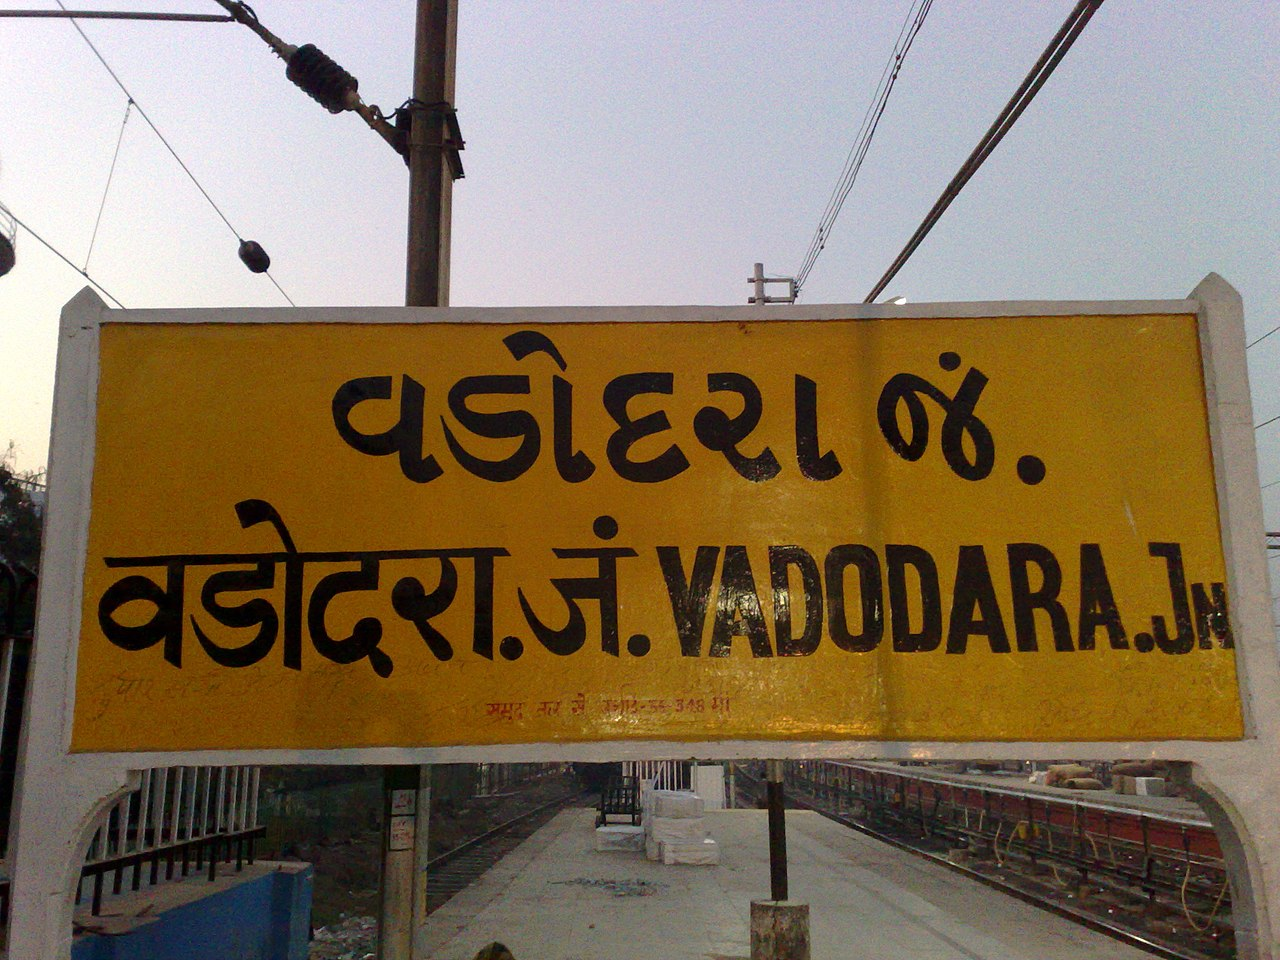 surat rajkot and vadodara are among the 10 cleanest railway surat rajkot and vadodara are among the 10 cleanest railway stations in